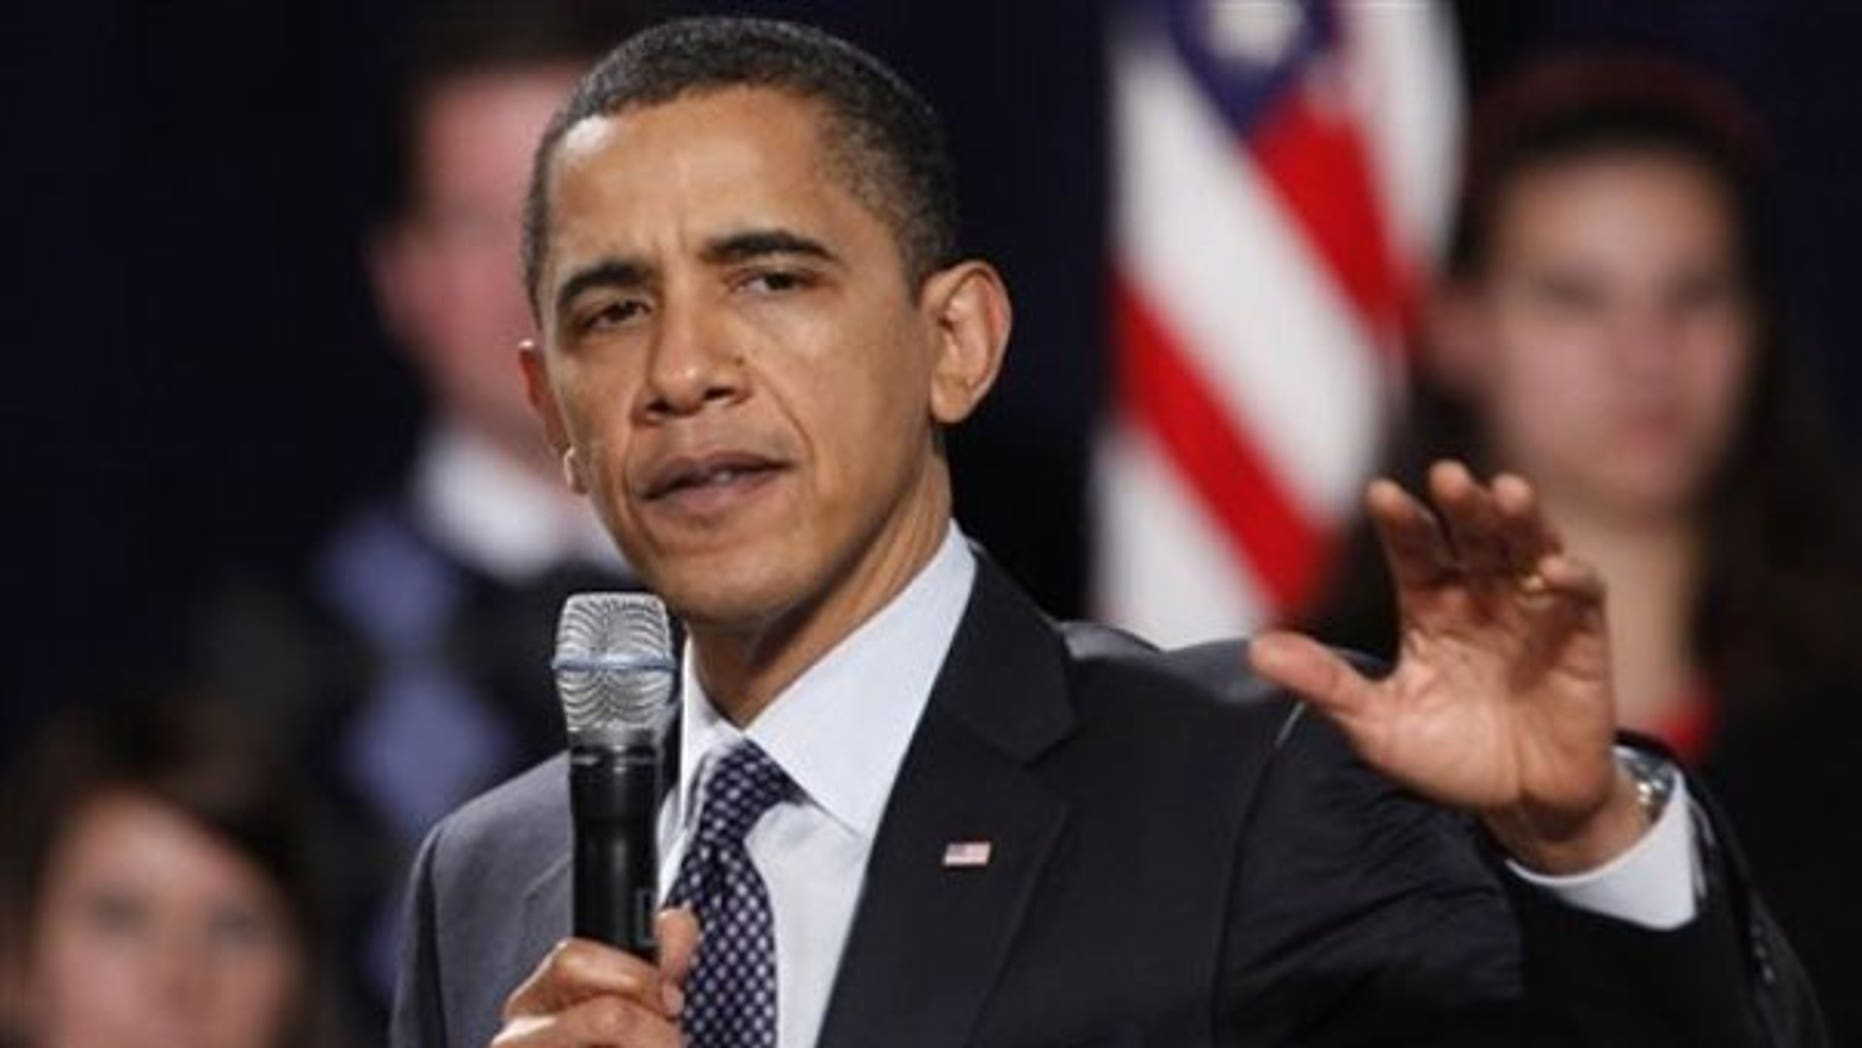 Dec. 4: President Obama gestures while making remarks at Lehigh Carbon Community College in Schnecksville, Pa. (AP).